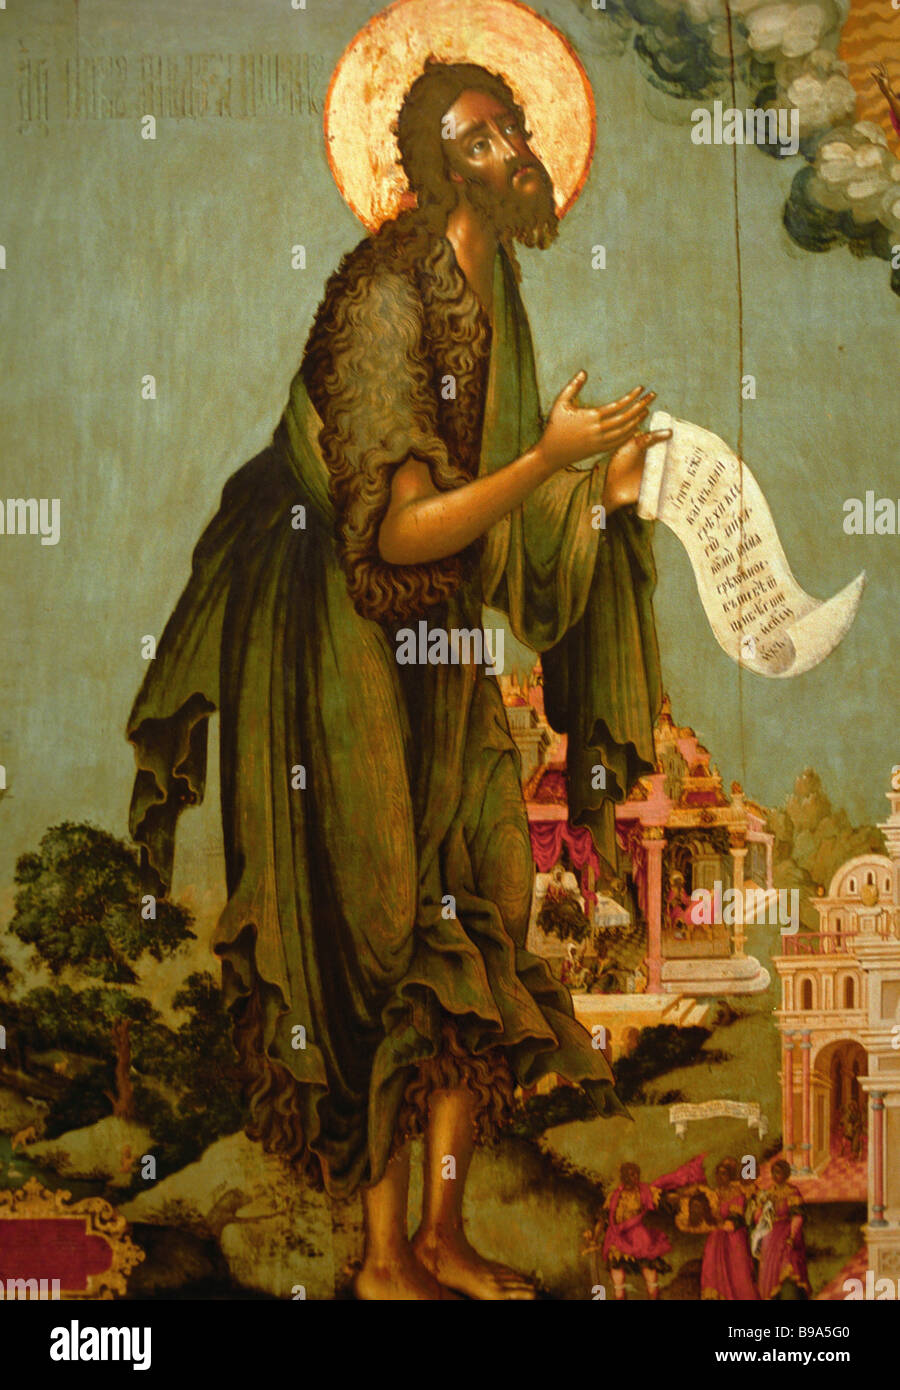 an introduction to the life of st john the baptist – from a sermon by saint augustine on the birth of john the baptist so they came to john and said to him, 'rabbi and gave his life for him.